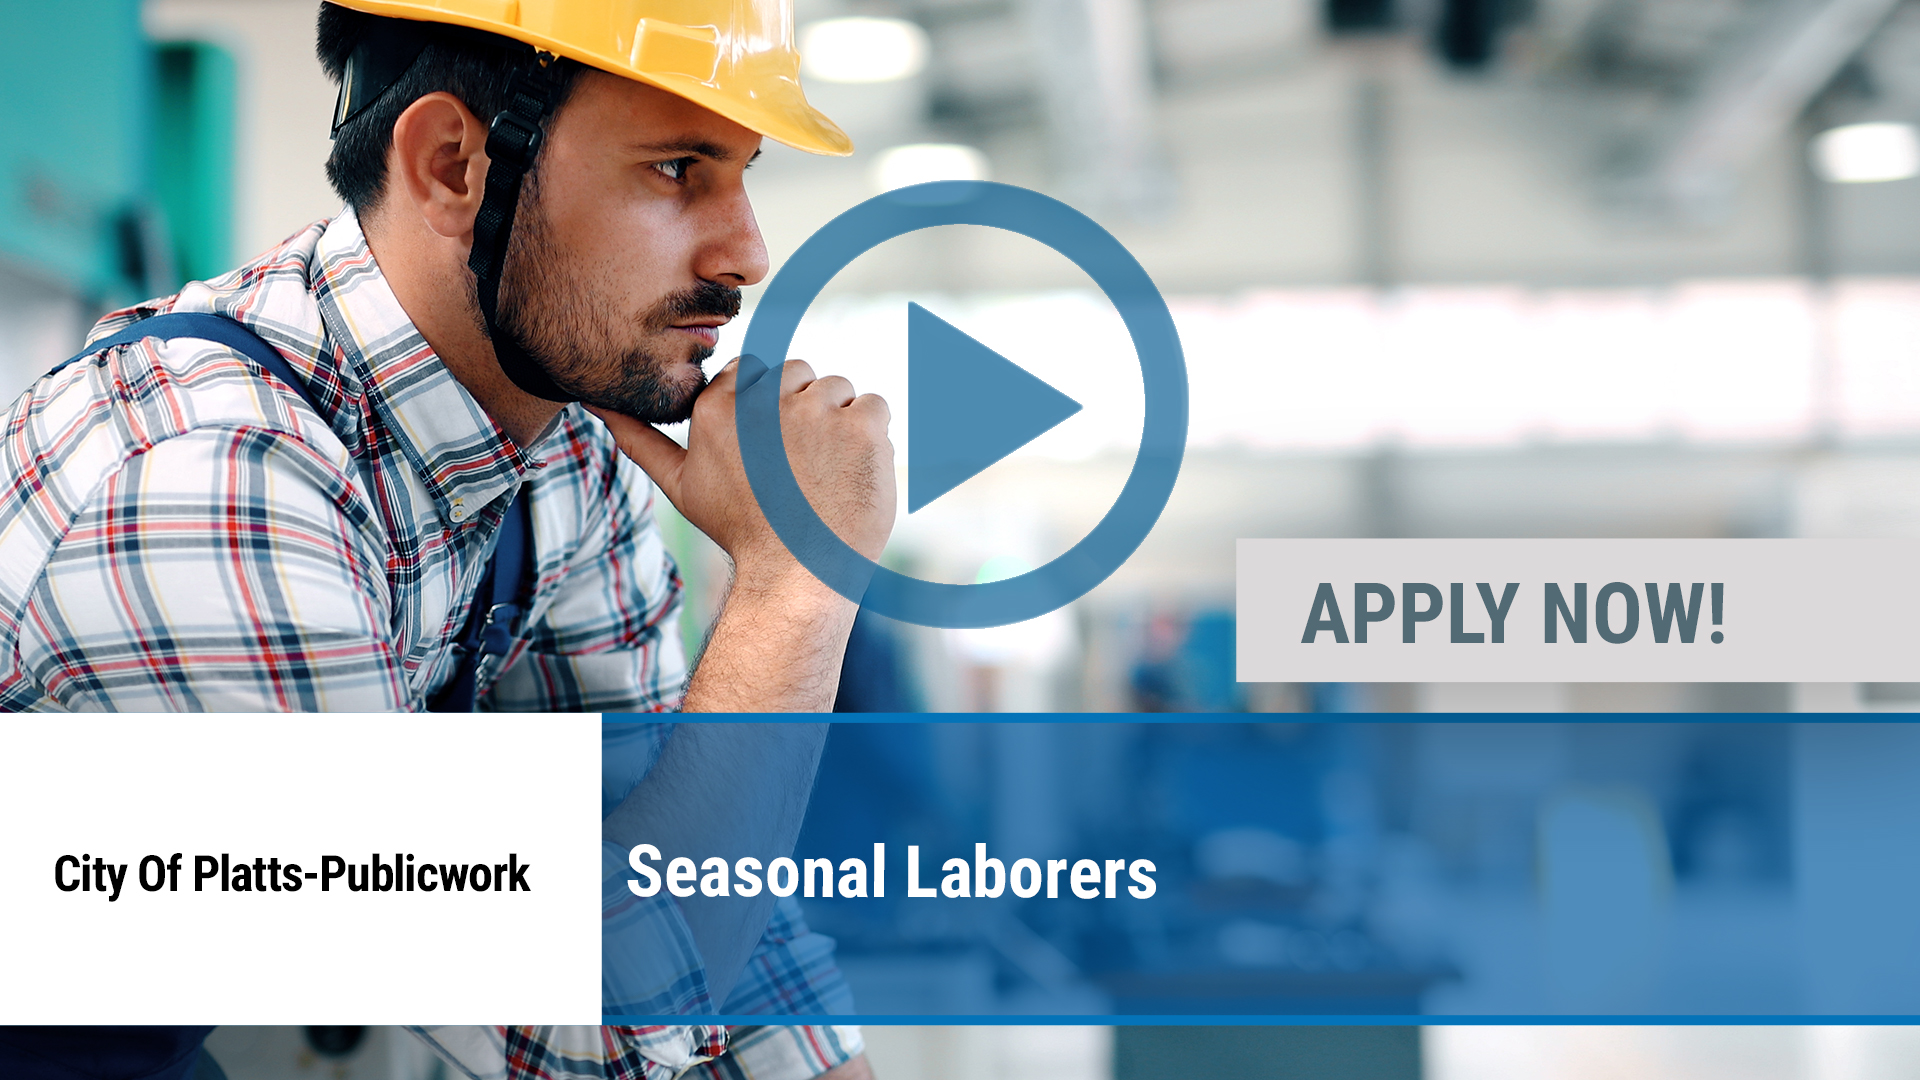 Watch our careers video for available job opening Seasonal Laborers in Plattsburgh, NY